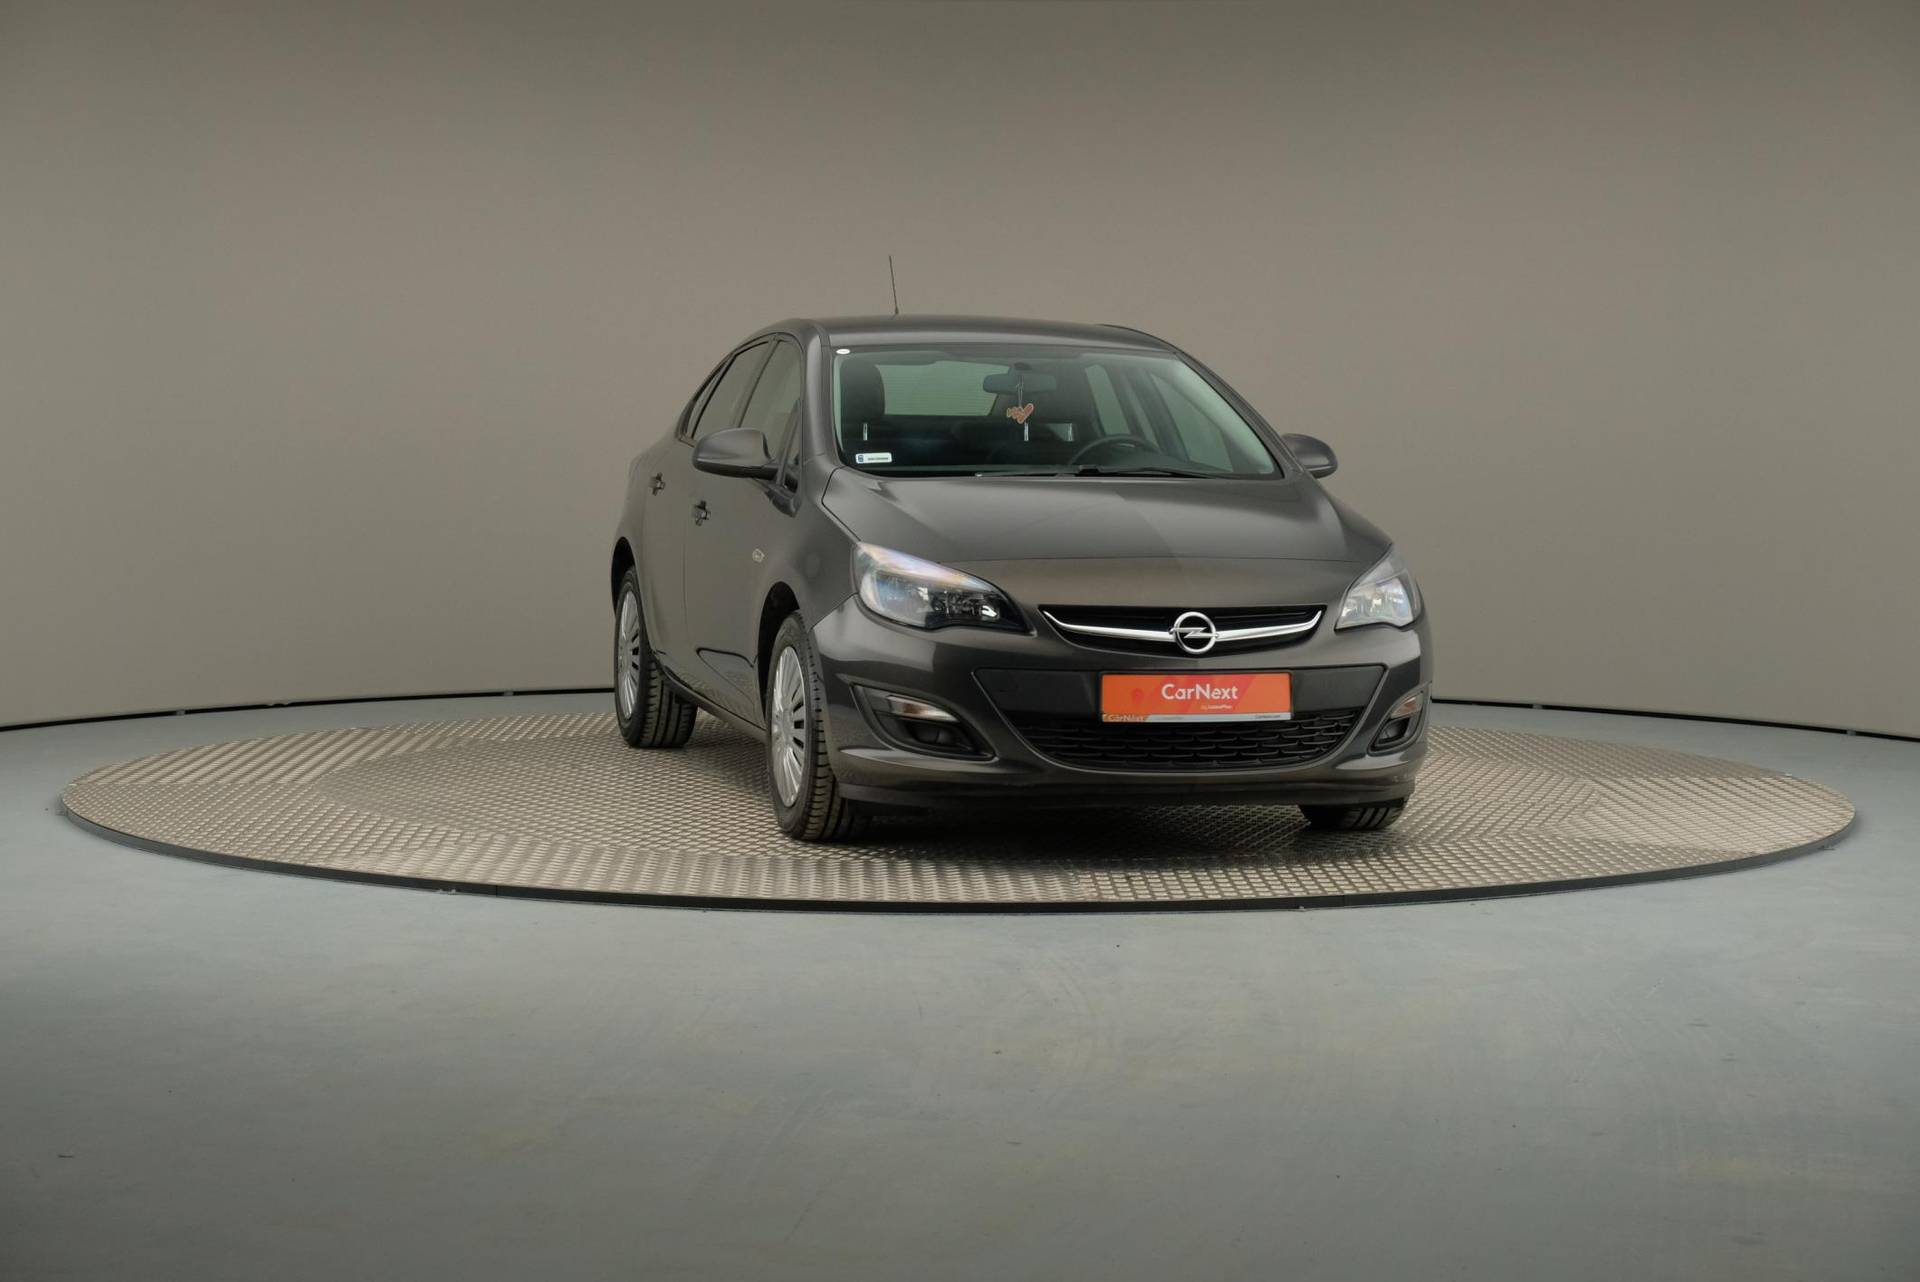 Opel Astra Astra 1.6 Twinport 115km, 360-image30